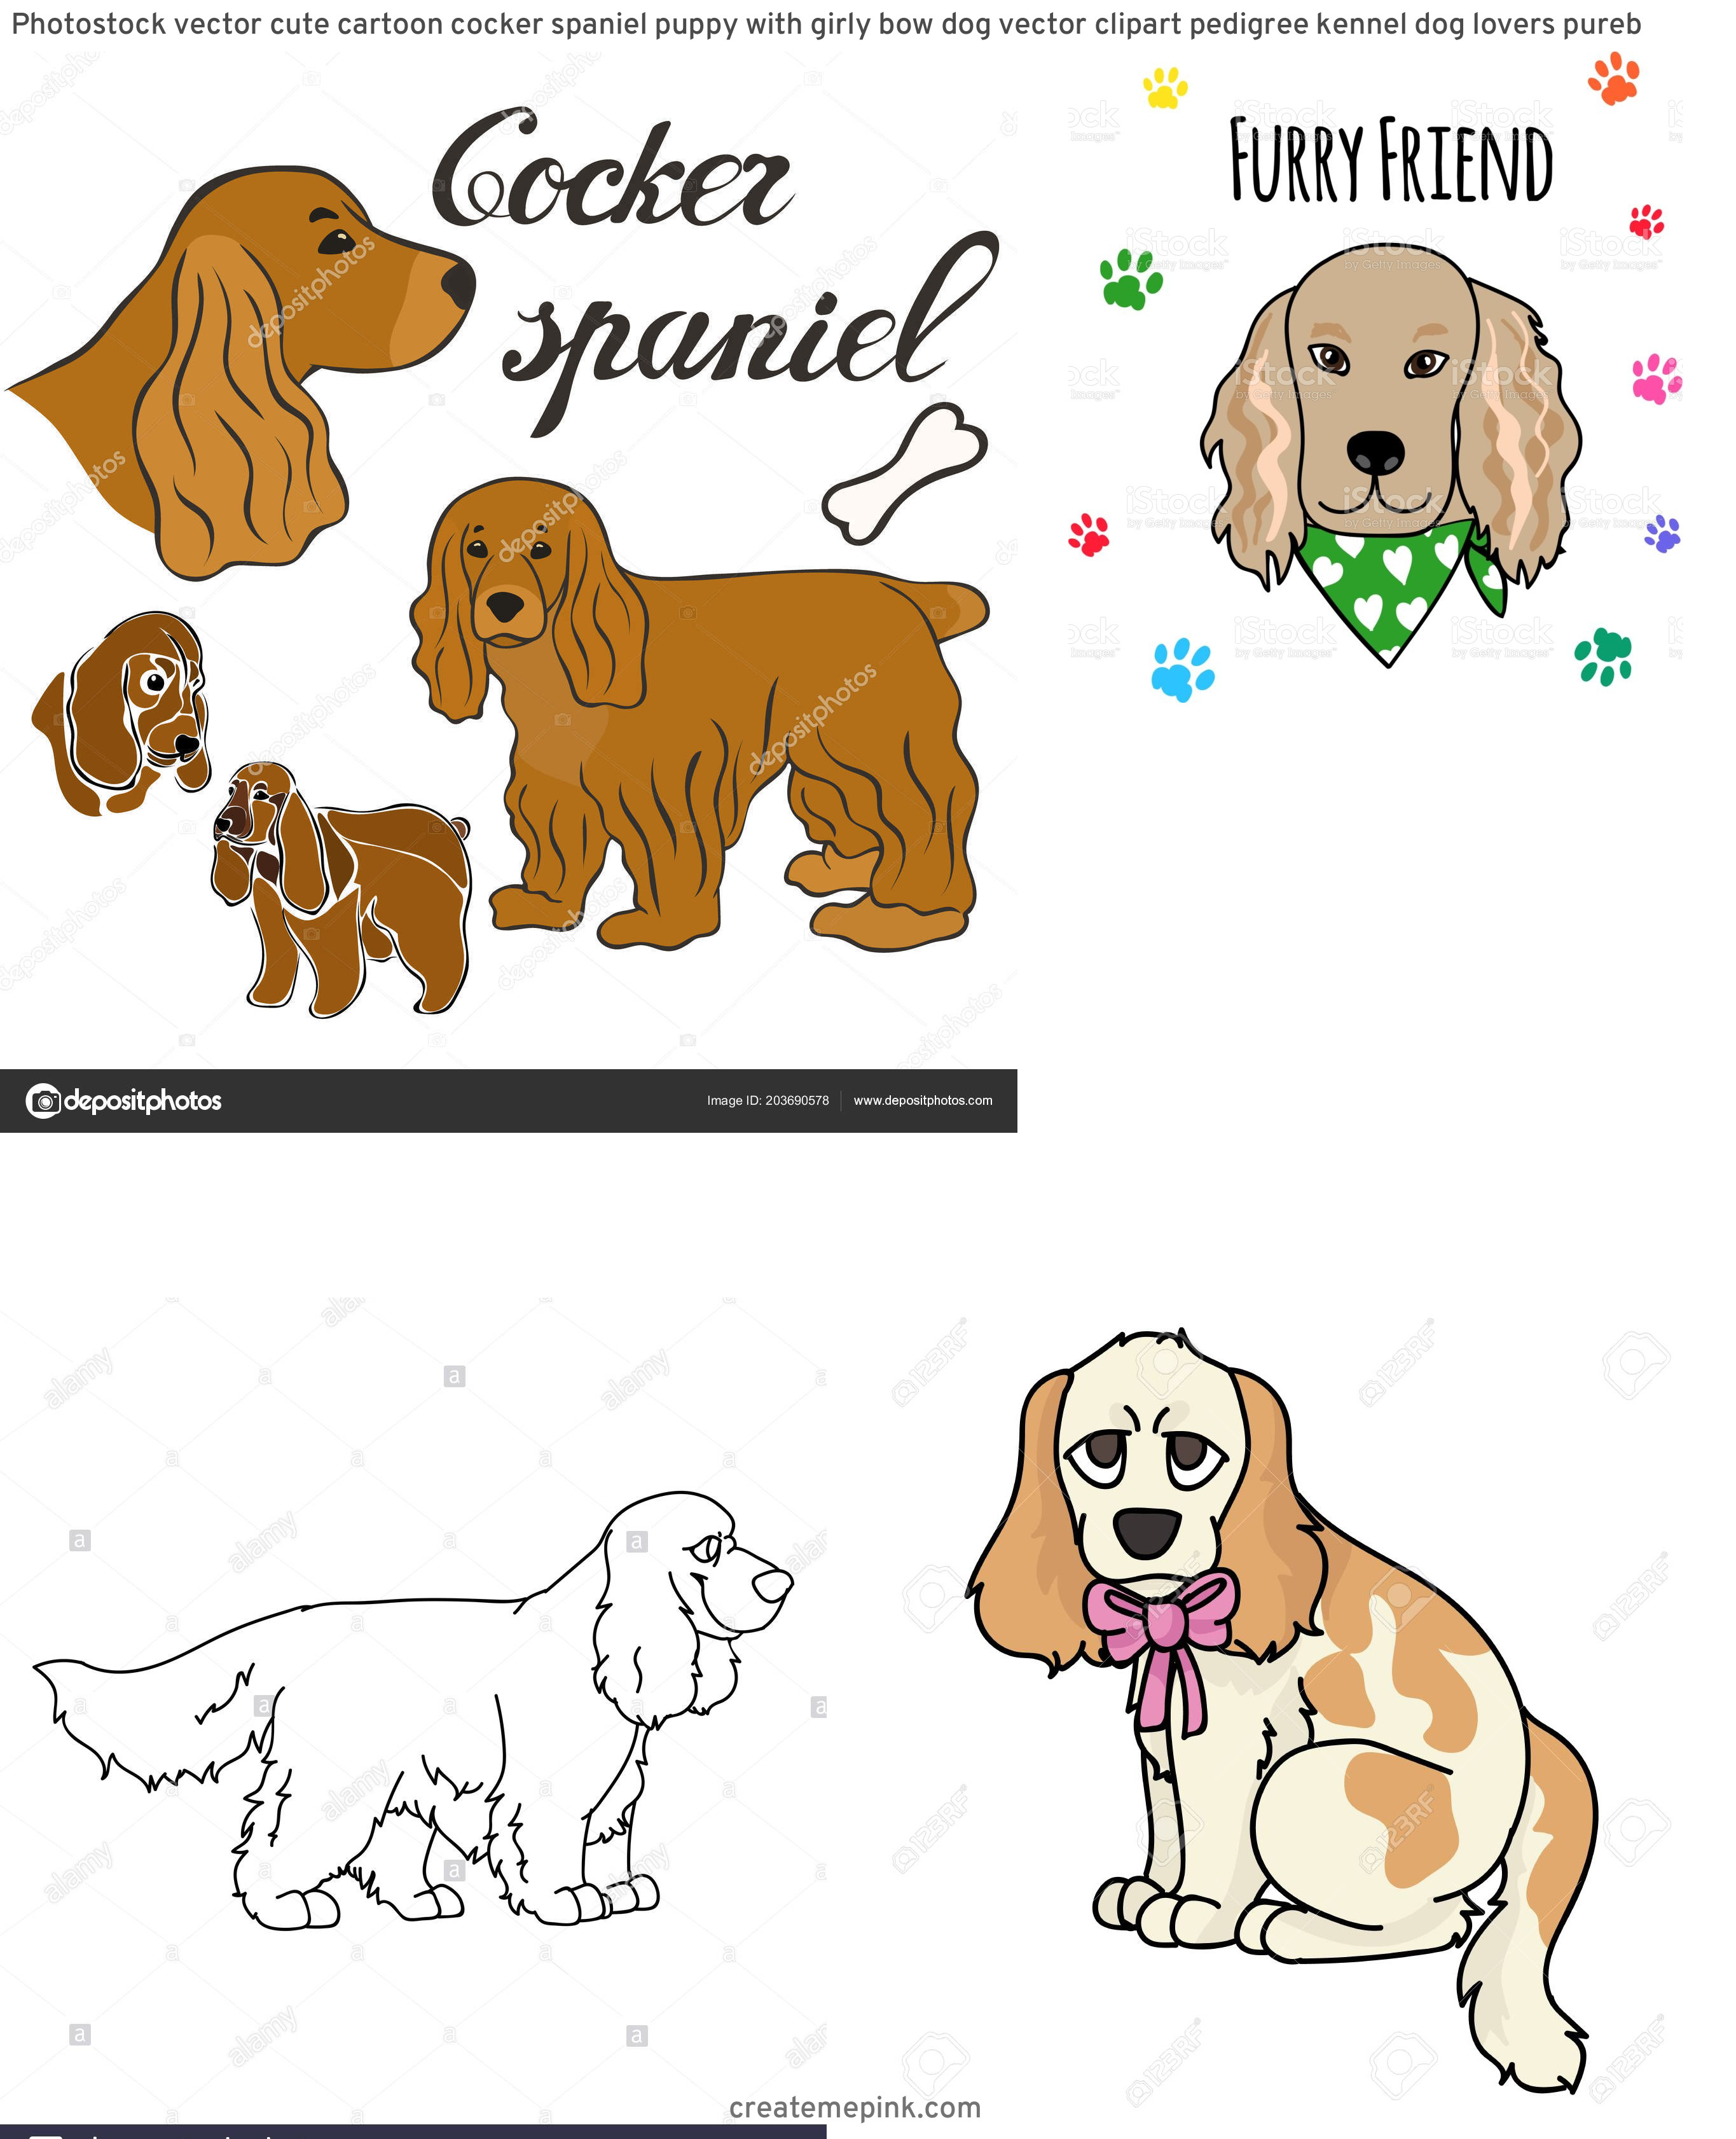 Spaniel Dog Vector: Photostock Vector Cute Cartoon Cocker Spaniel Puppy With Girly Bow Dog Vector Clipart Pedigree Kennel Dog Lovers Pureb